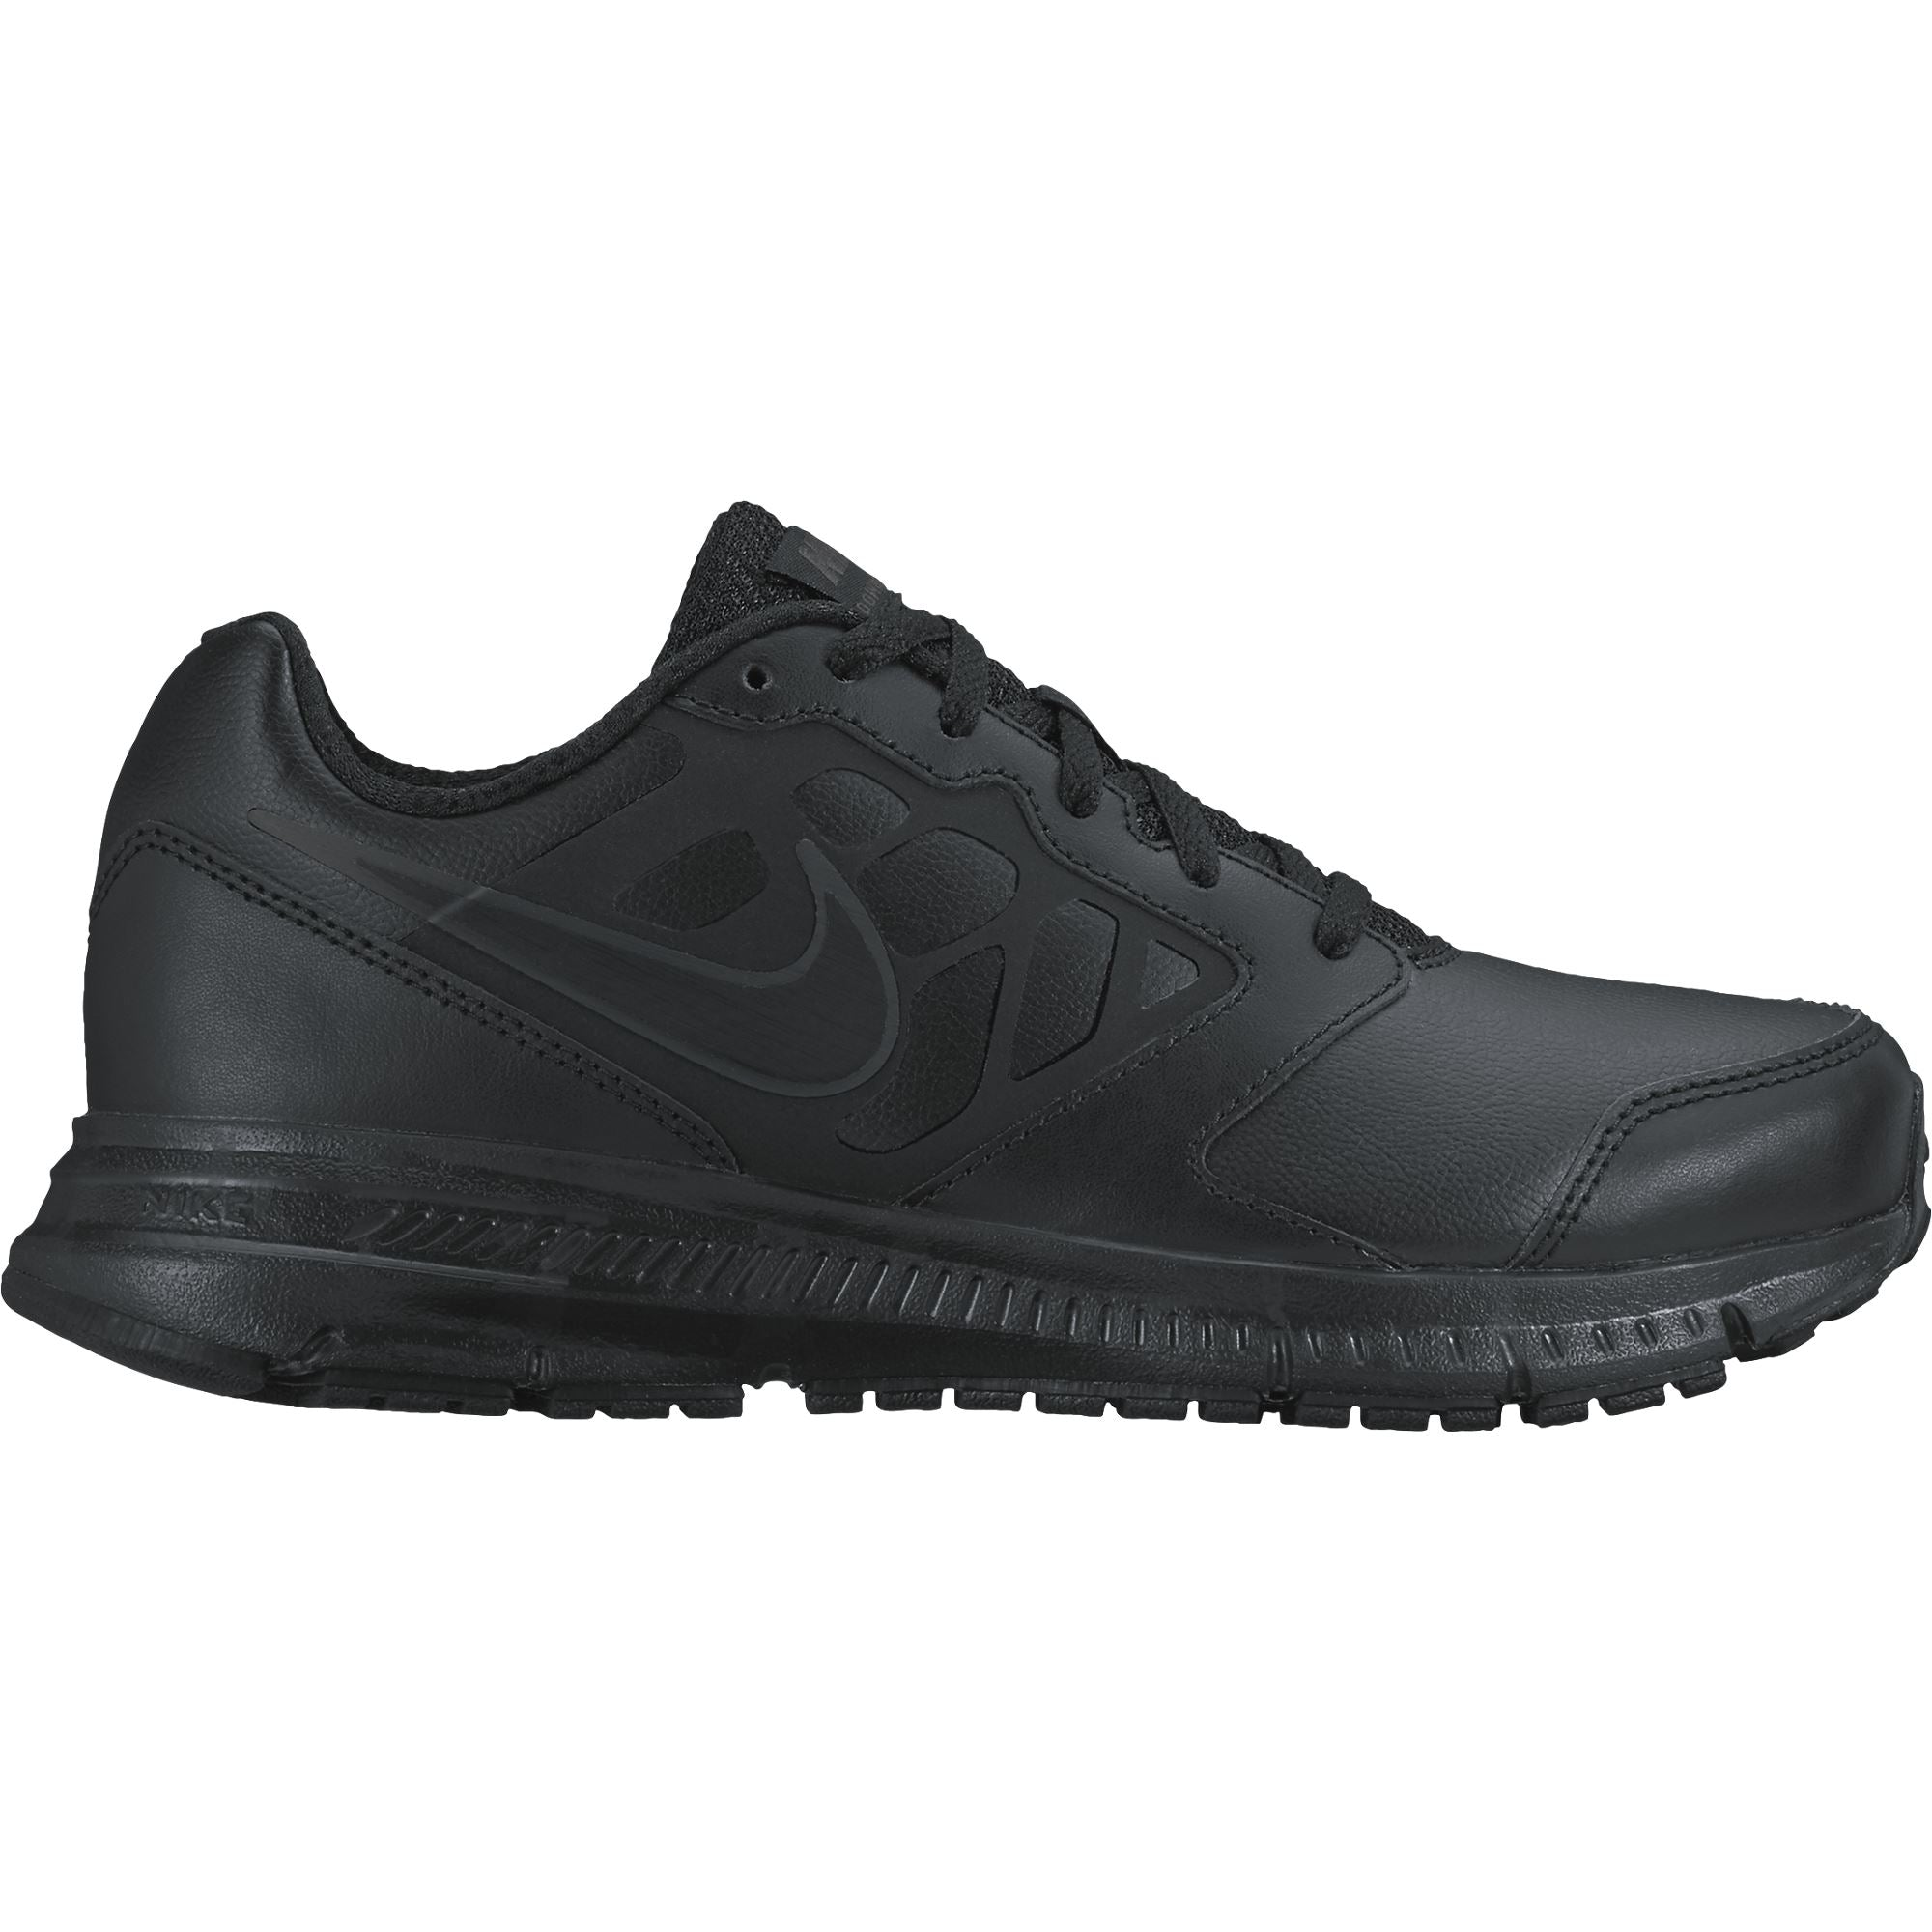 Nike Boys Downshifter 6 Ltr (GS) Running Shoe - Black/Black-Anthracite Q3NIKE Nike